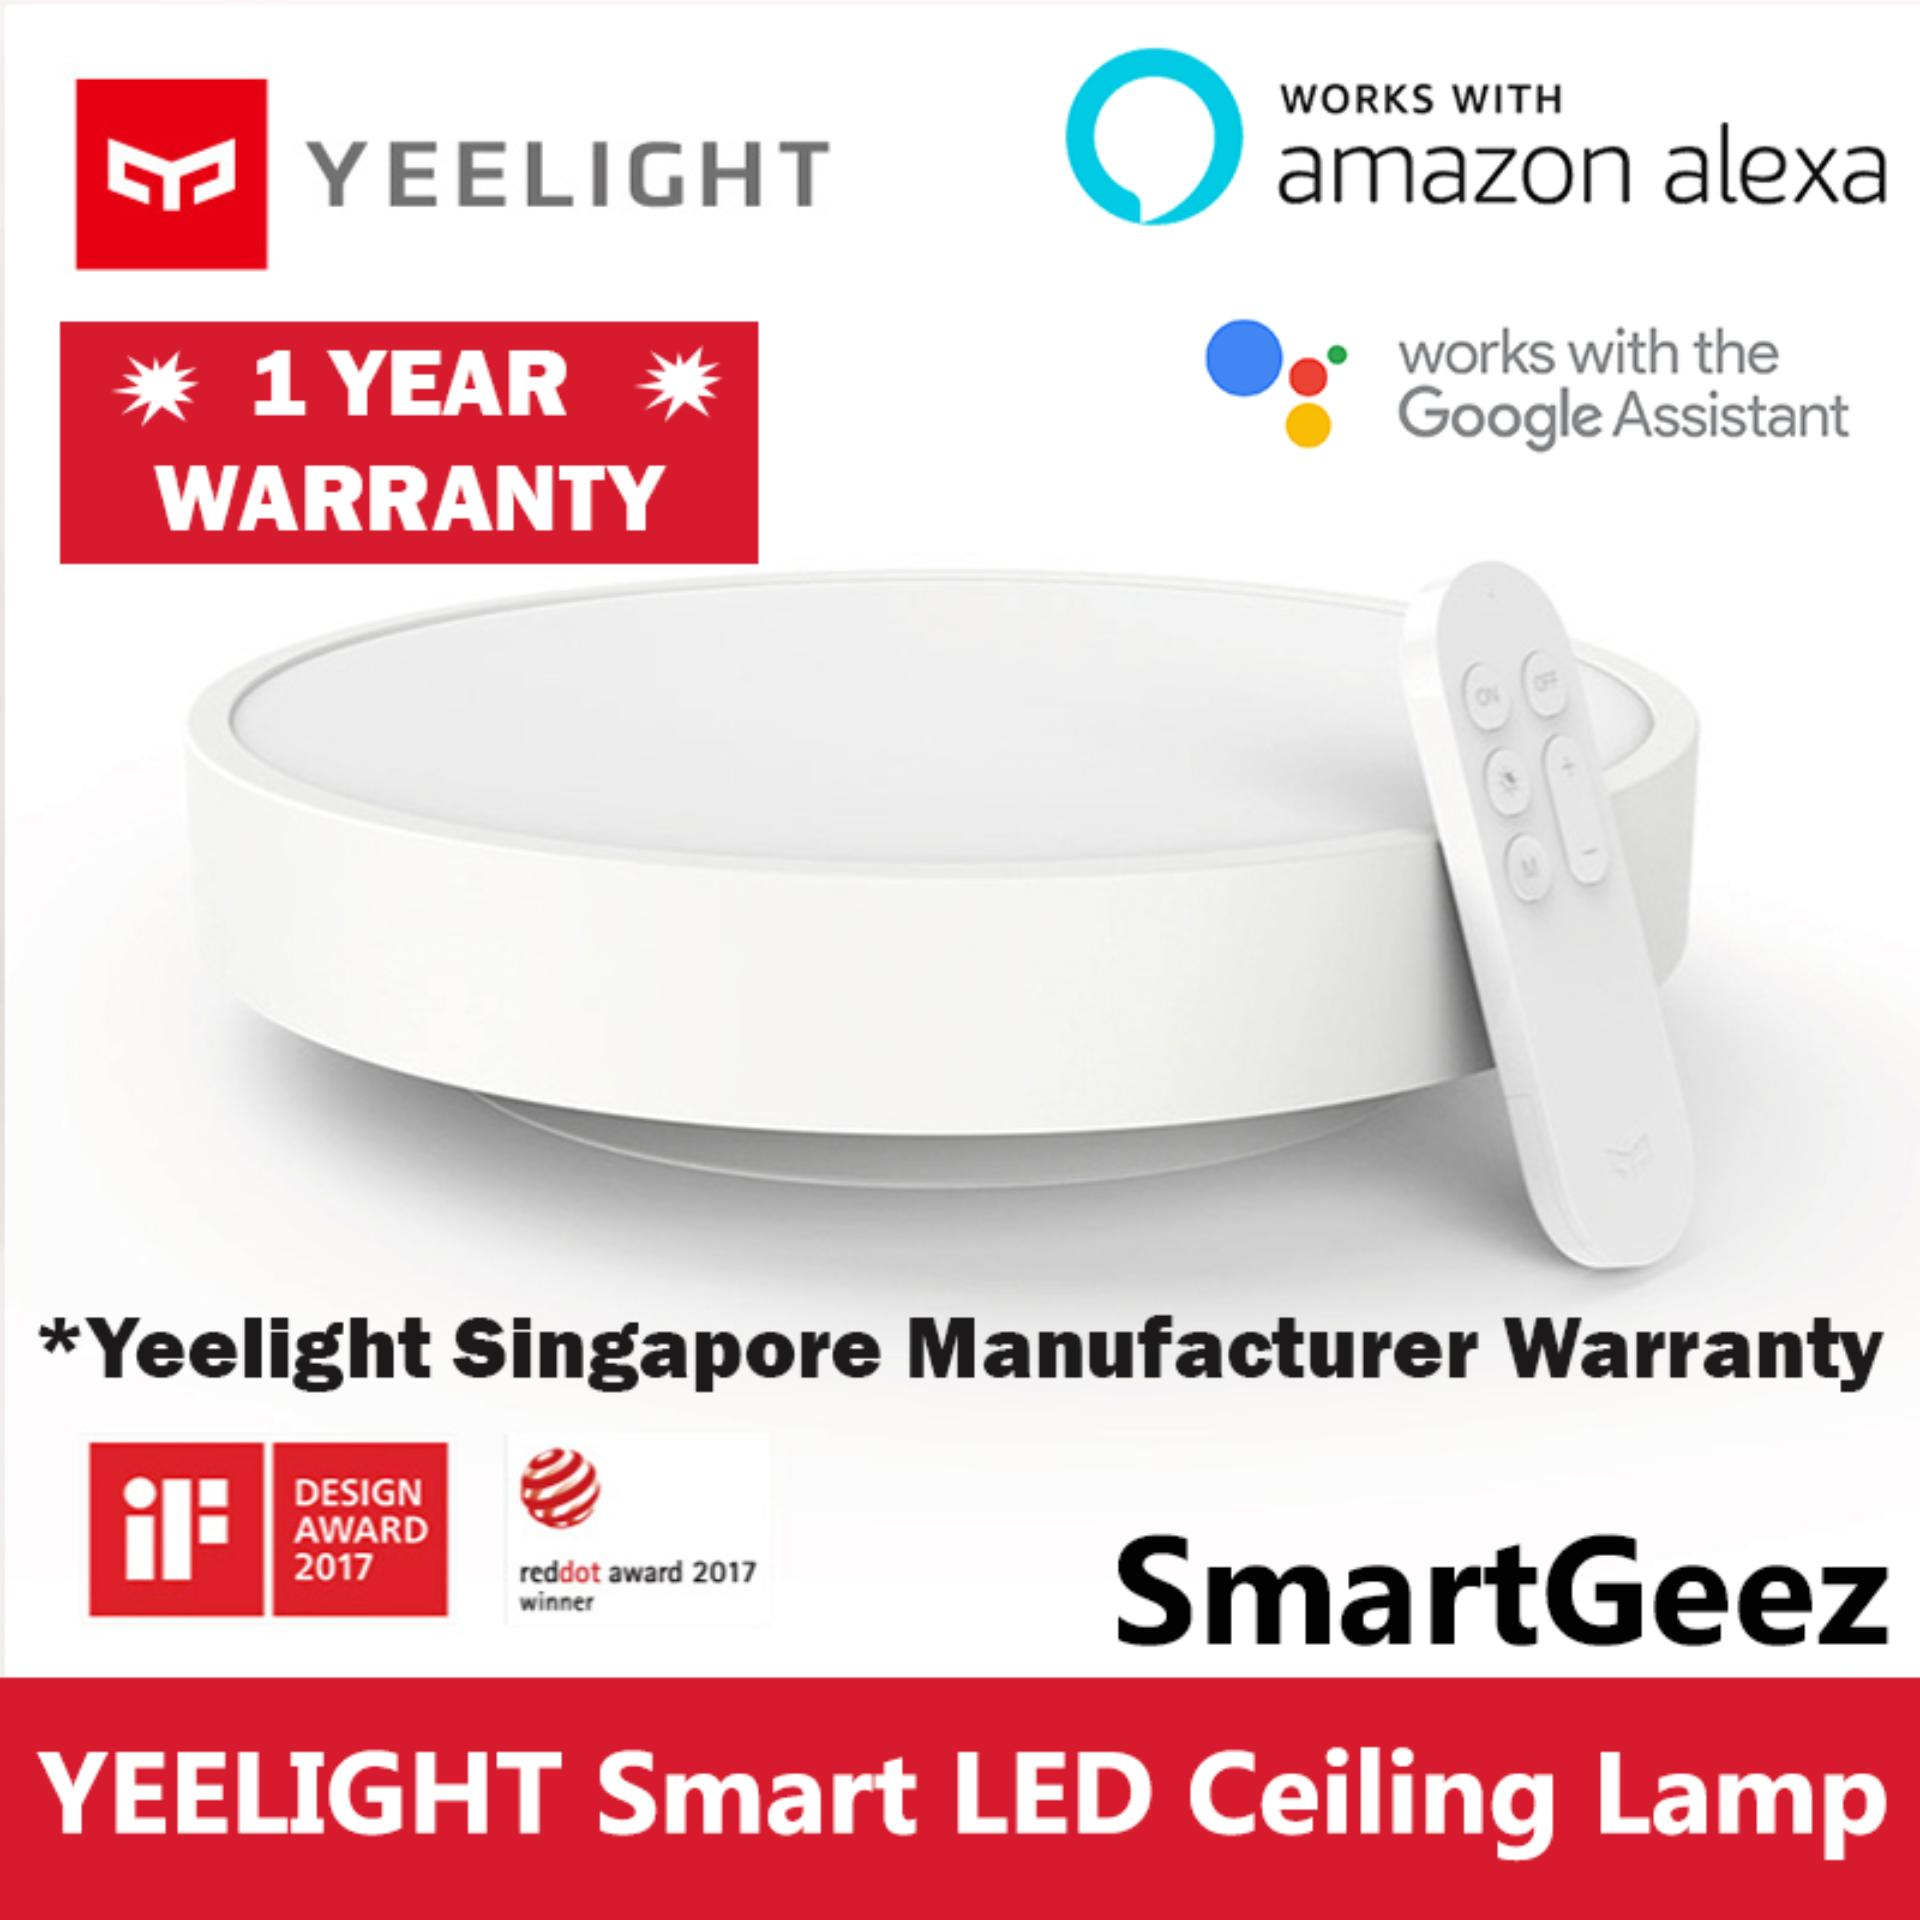 Yeelight Smart LED Ceiling Light Lamp (White) 28W Wifi / BLE 1800 Lumens - Remote Control Included - Xiaomi Mijia Smart Home Automation - (Works with Google Home Assistant Amazon Alexa Echo IFTTT) - Mi Home / Yeelight App - SmartGeez